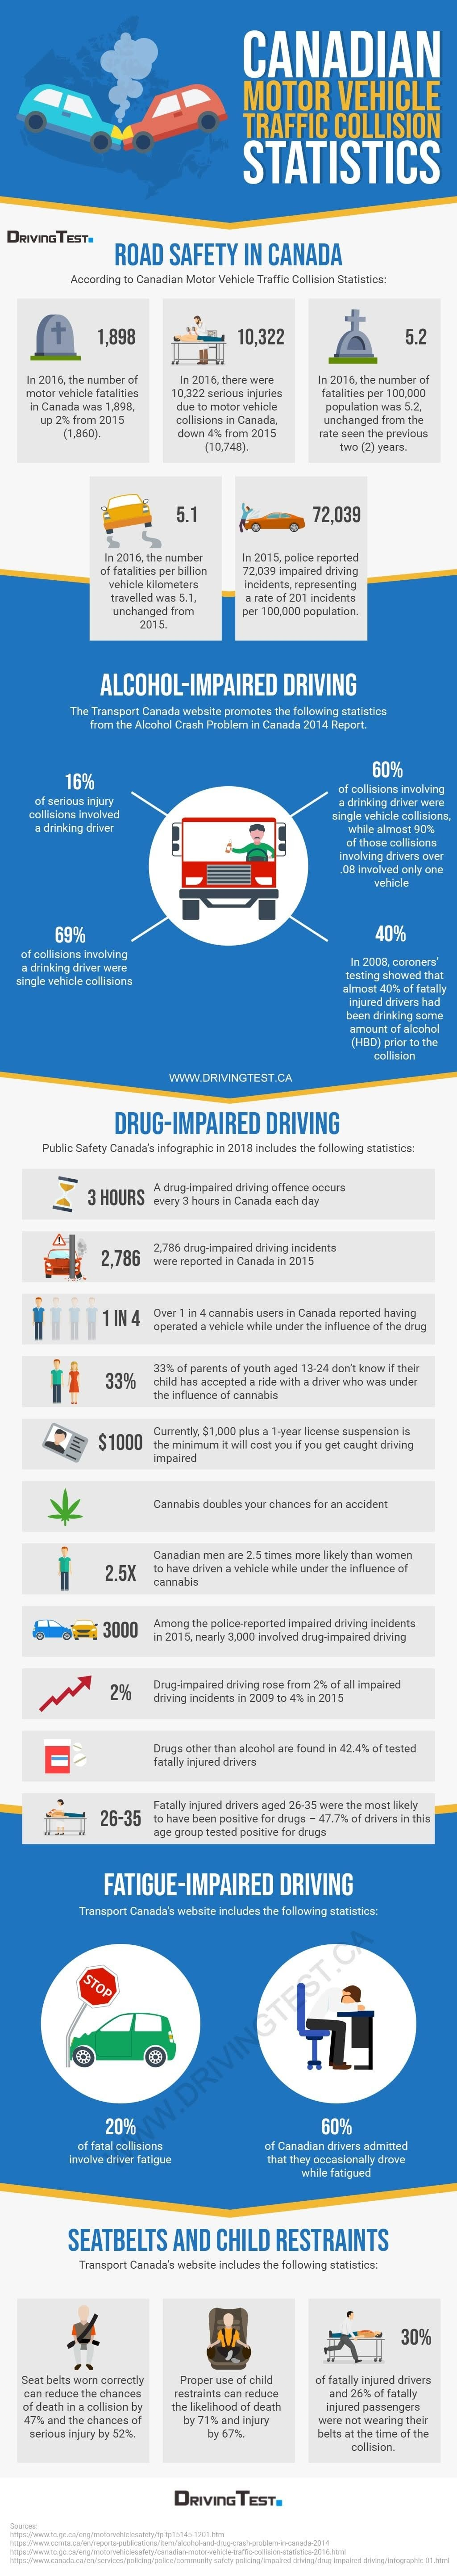 Canadian Motor Vehicle Traffic Collision Statistics #infographic